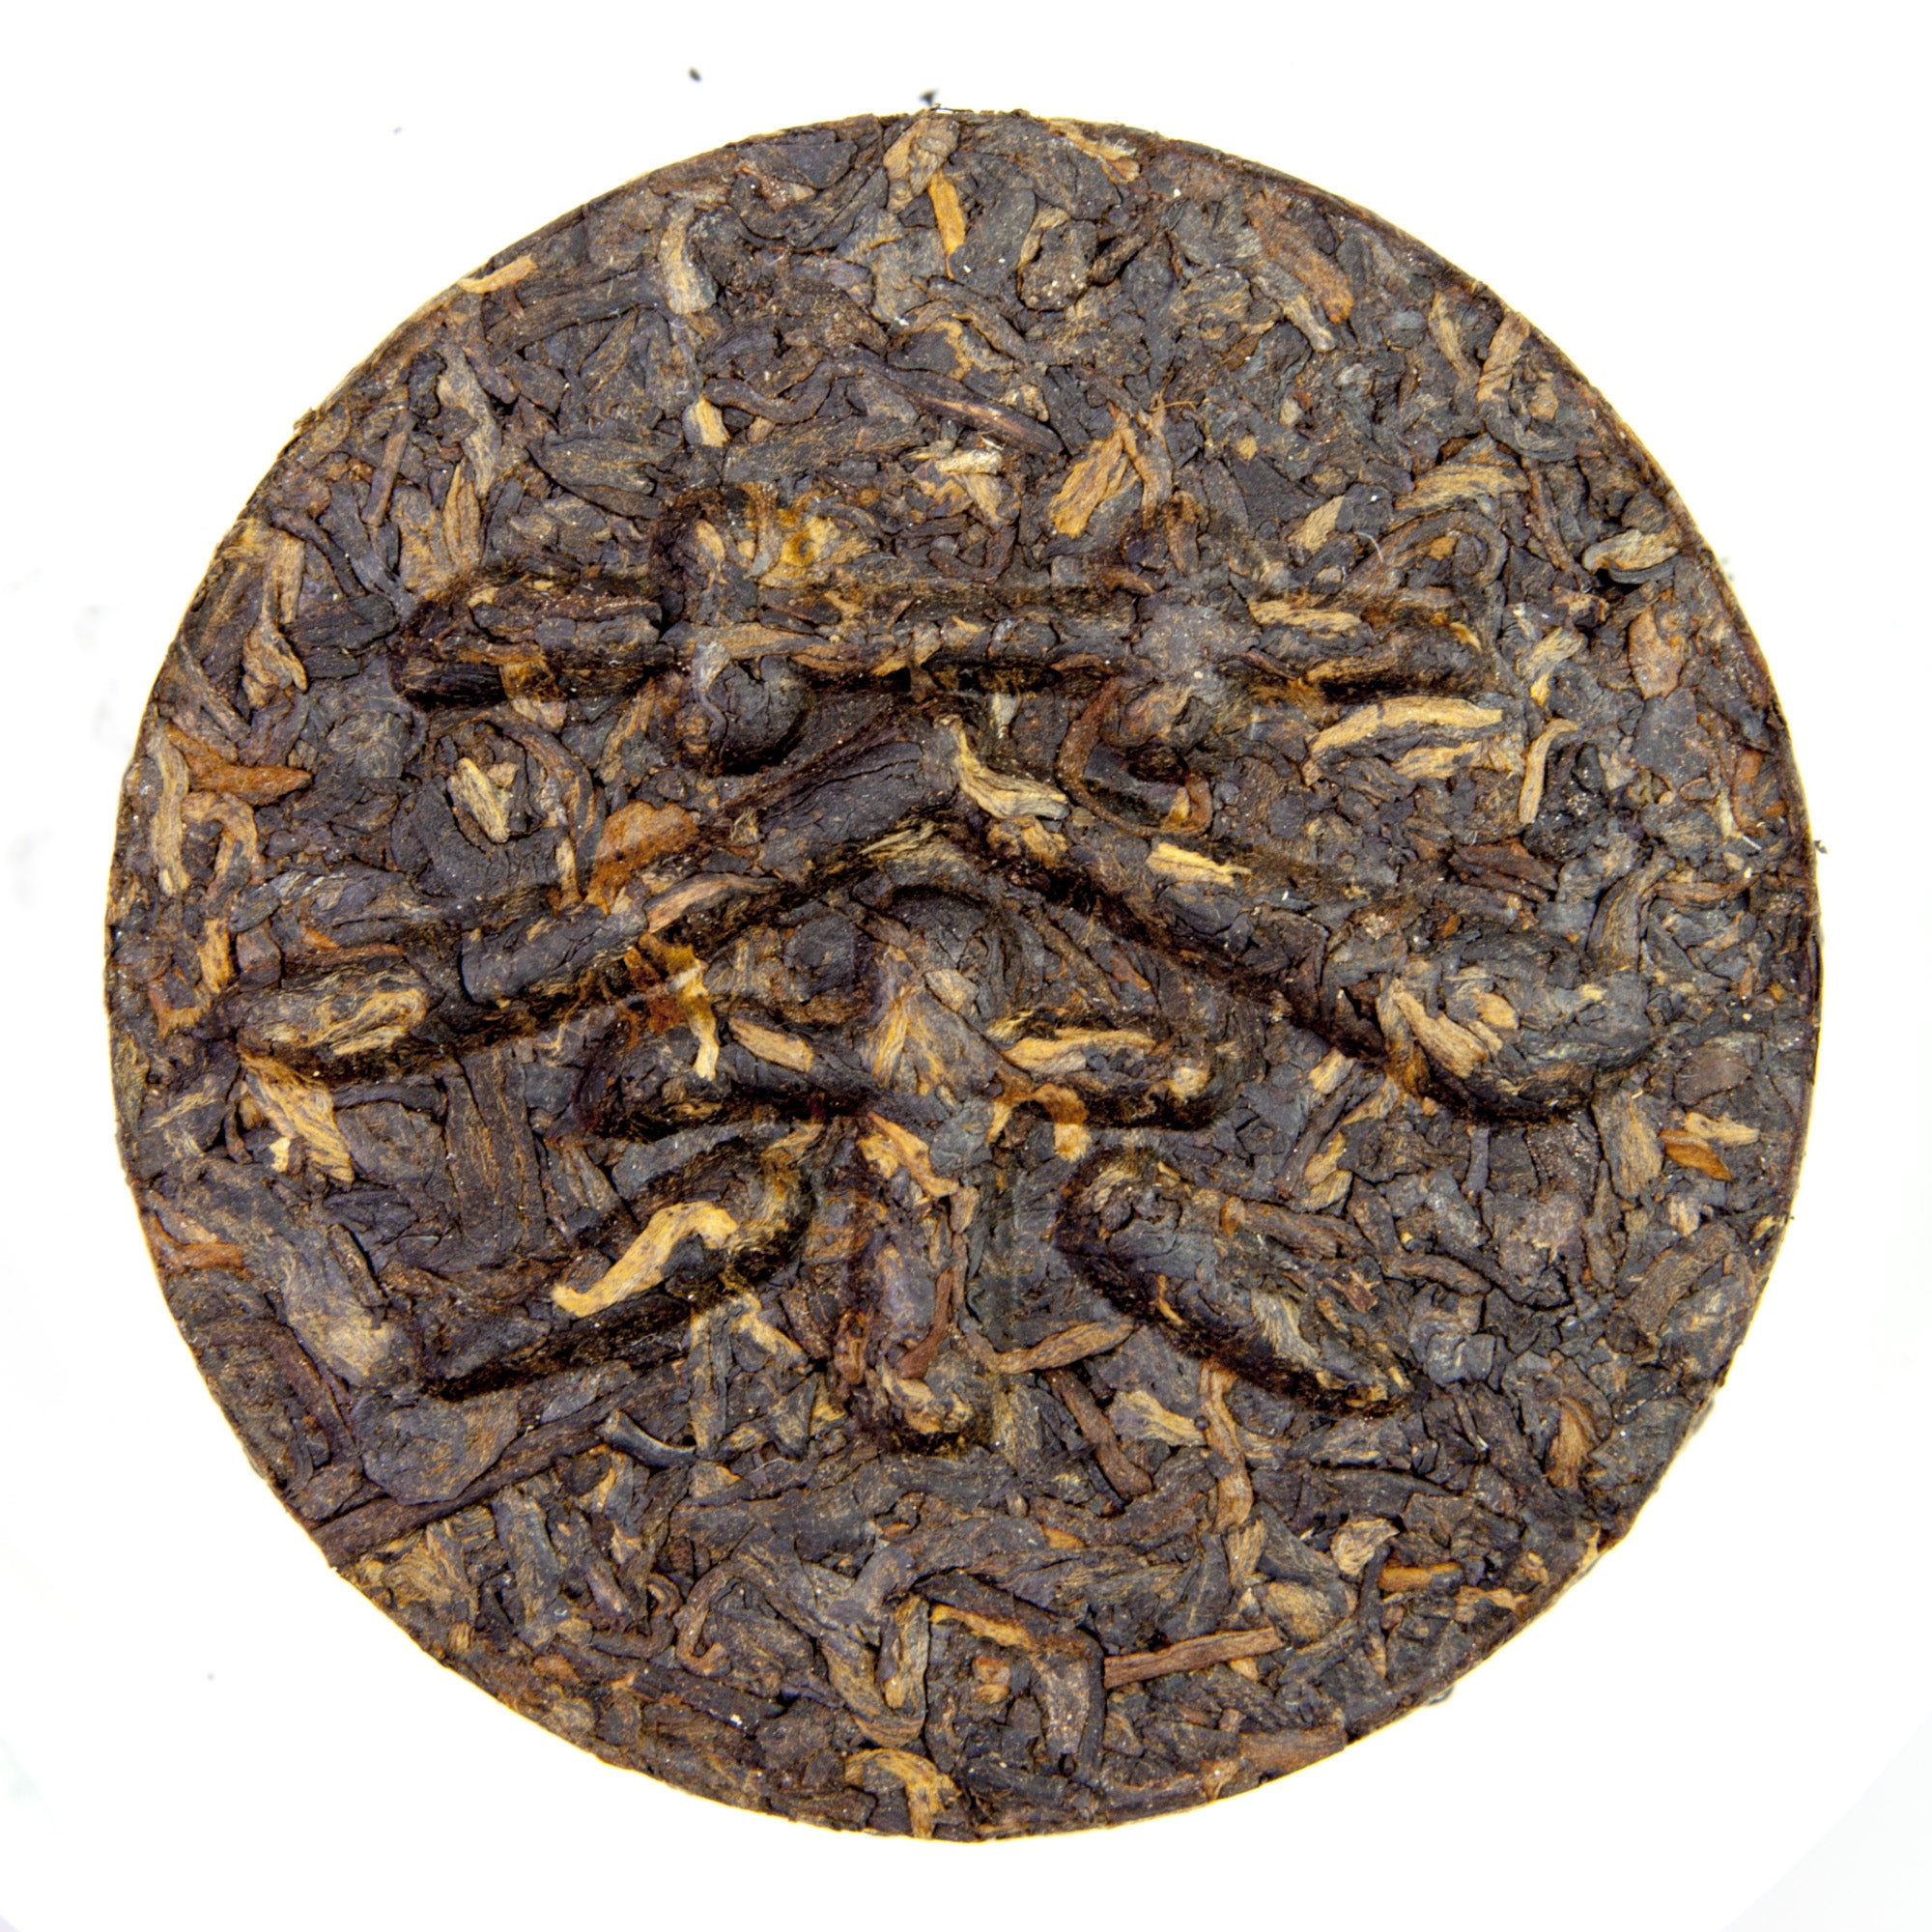 Xia Guan Cooked Puer Red Blossom